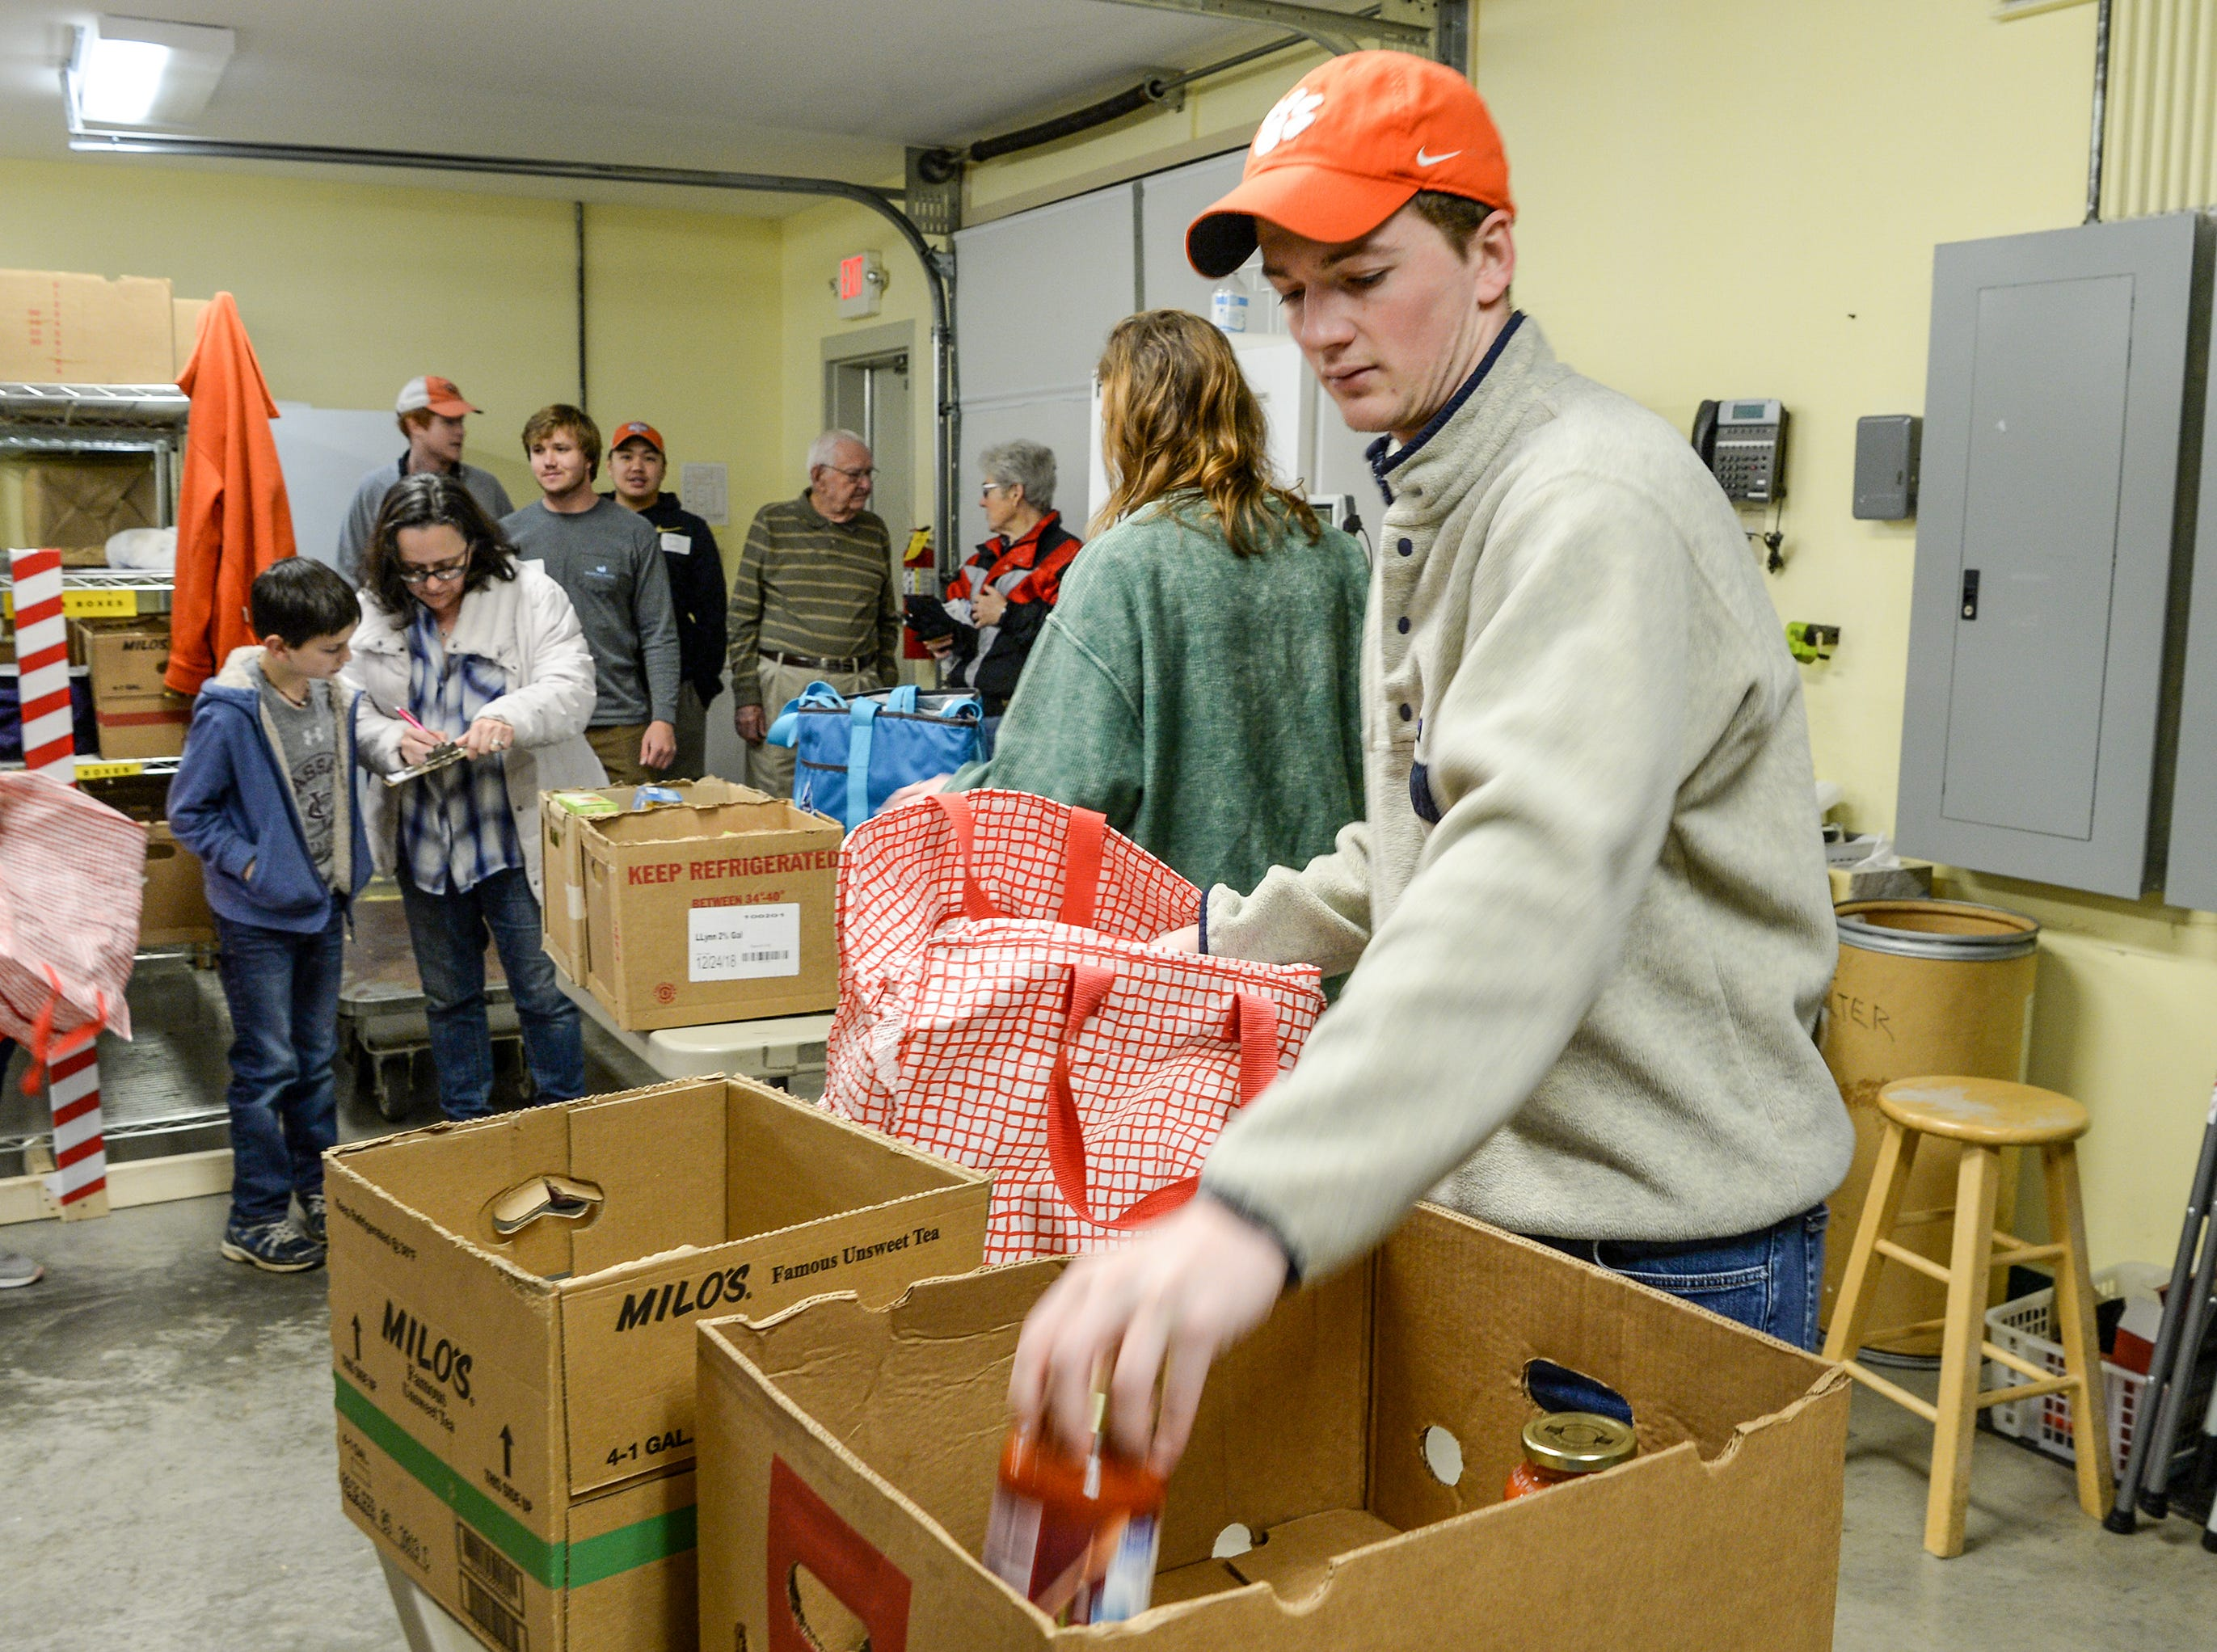 Fred O'Donnell, right, of Phi Gamma Delta fraternity helps organize donated food supplies from the Laurence family at Clemson Community Care, during the Clemson University Martin Luther King, Jr. Service Day in Clemson January 21, 2019.